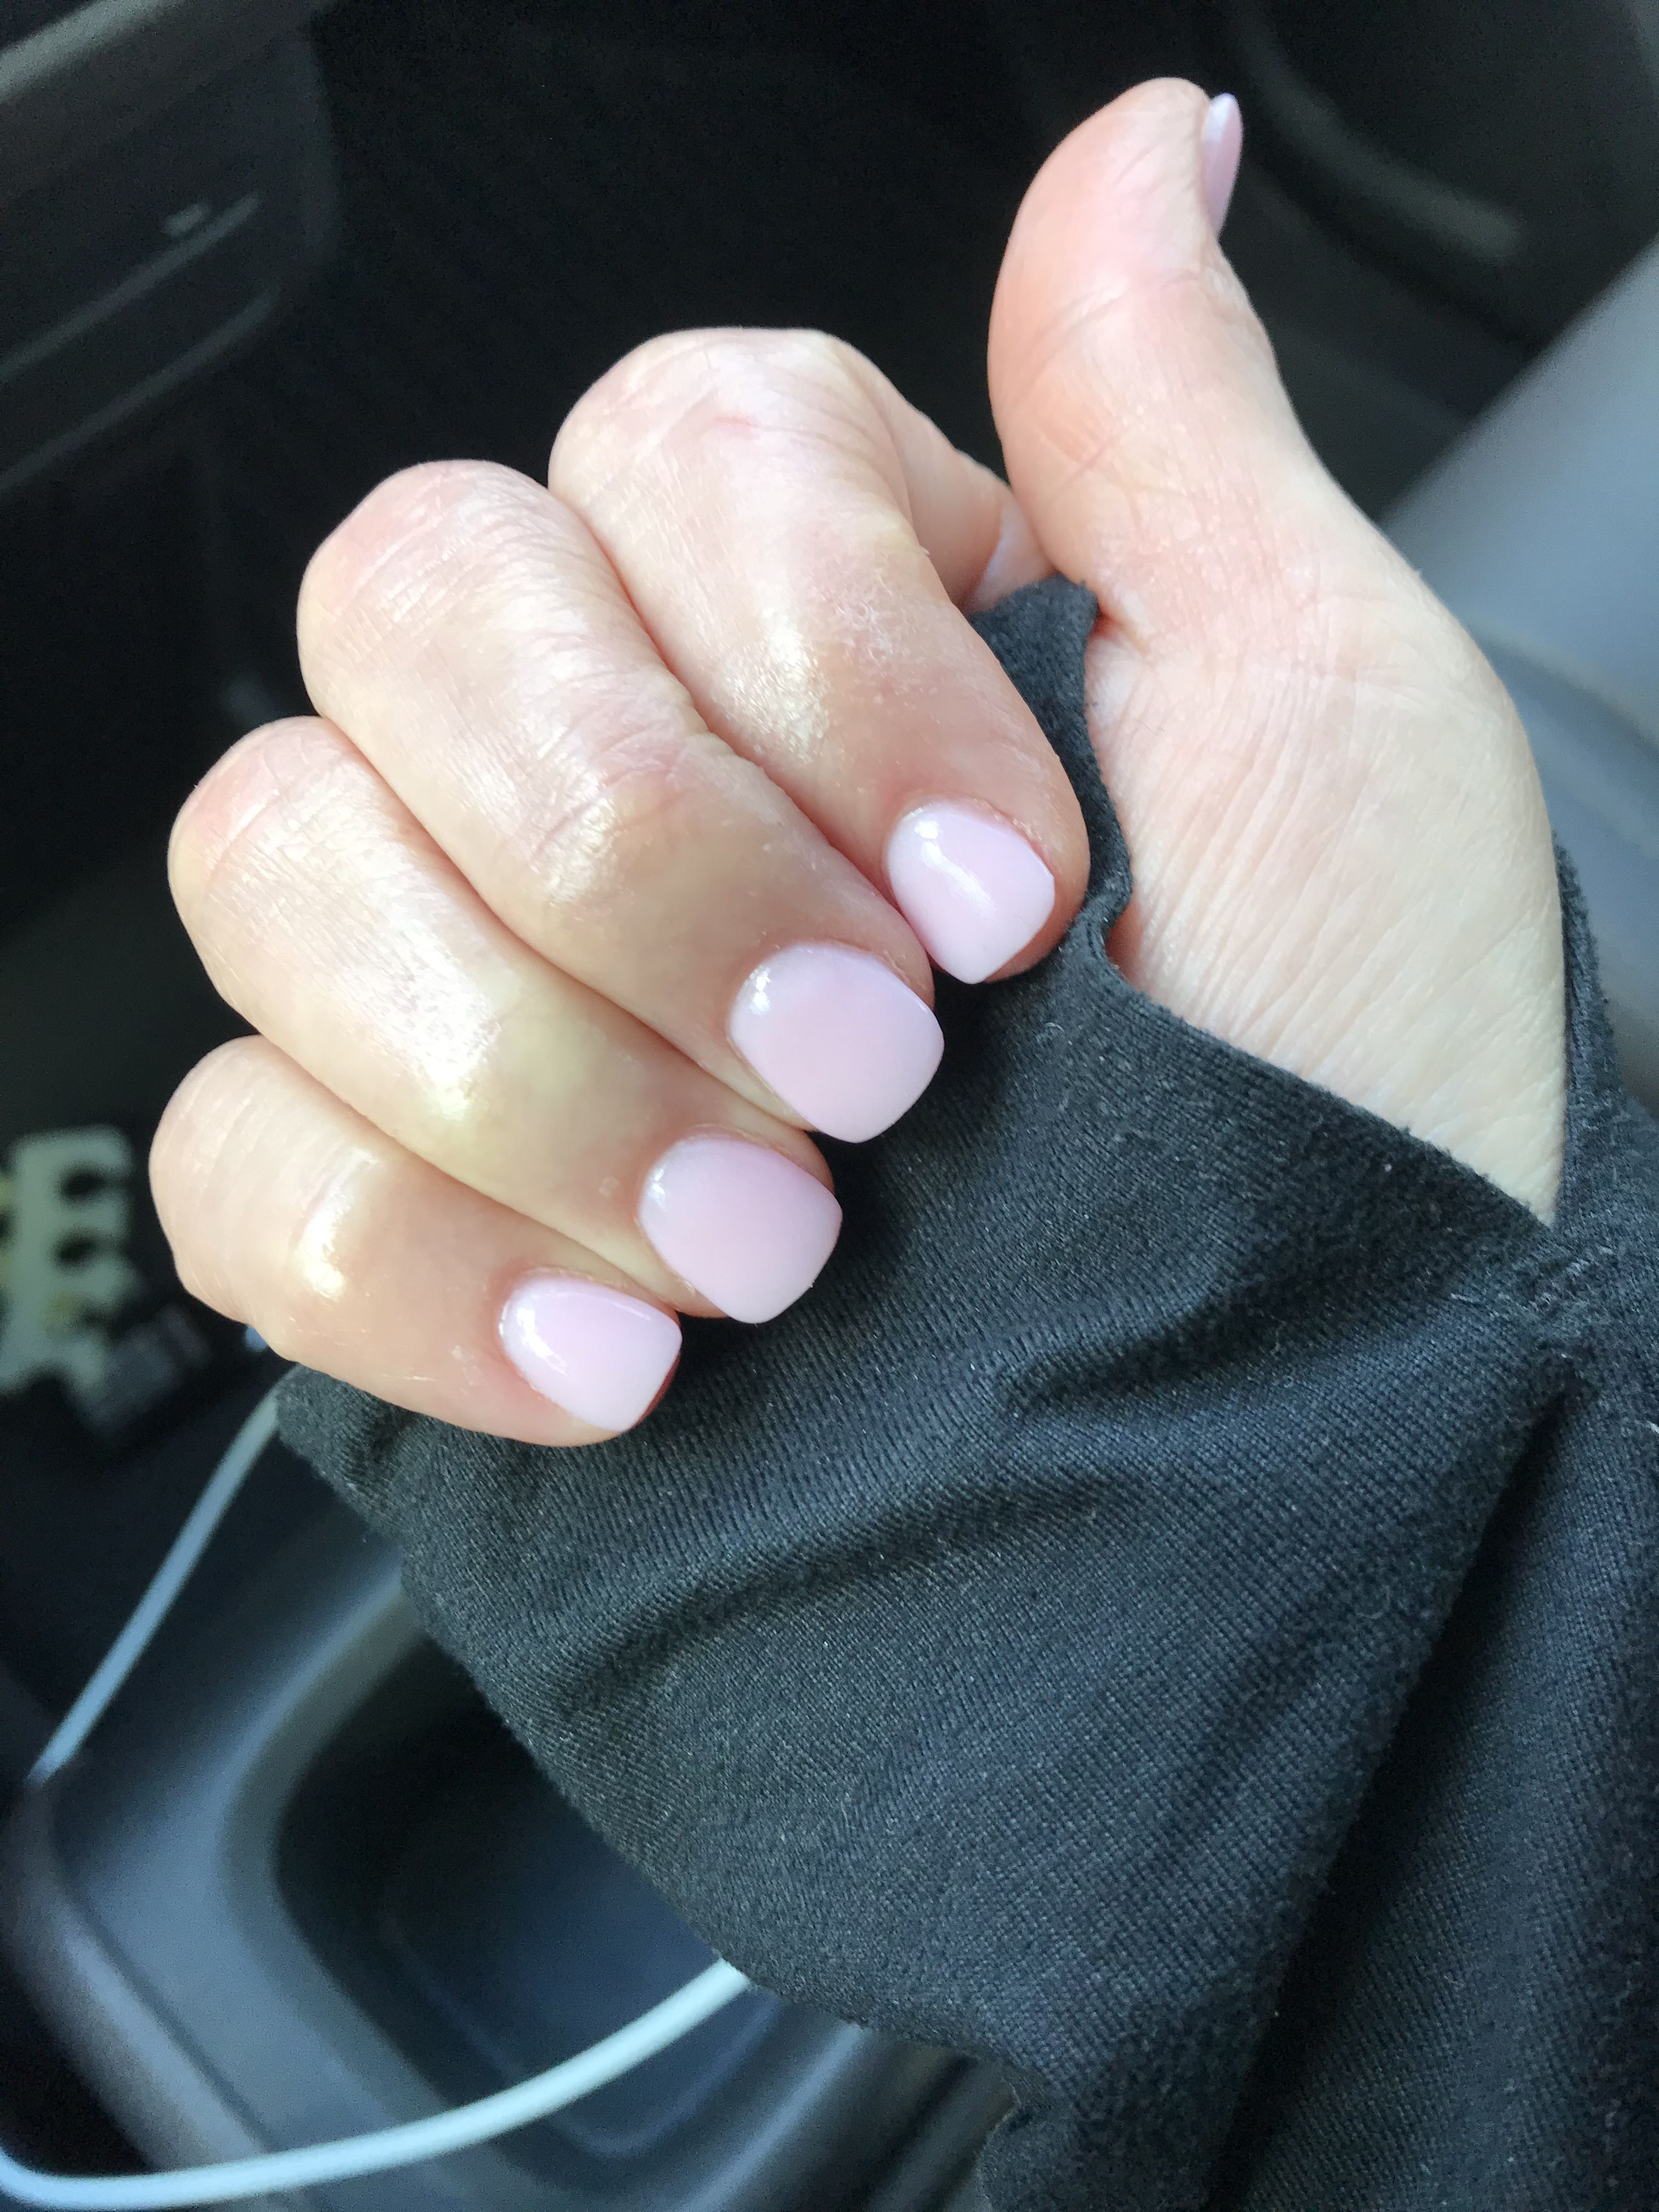 Nexgen Nails S22 Loving This Color On My Nails Nexgen Nails Short Acrylic Nails Luxury Nails